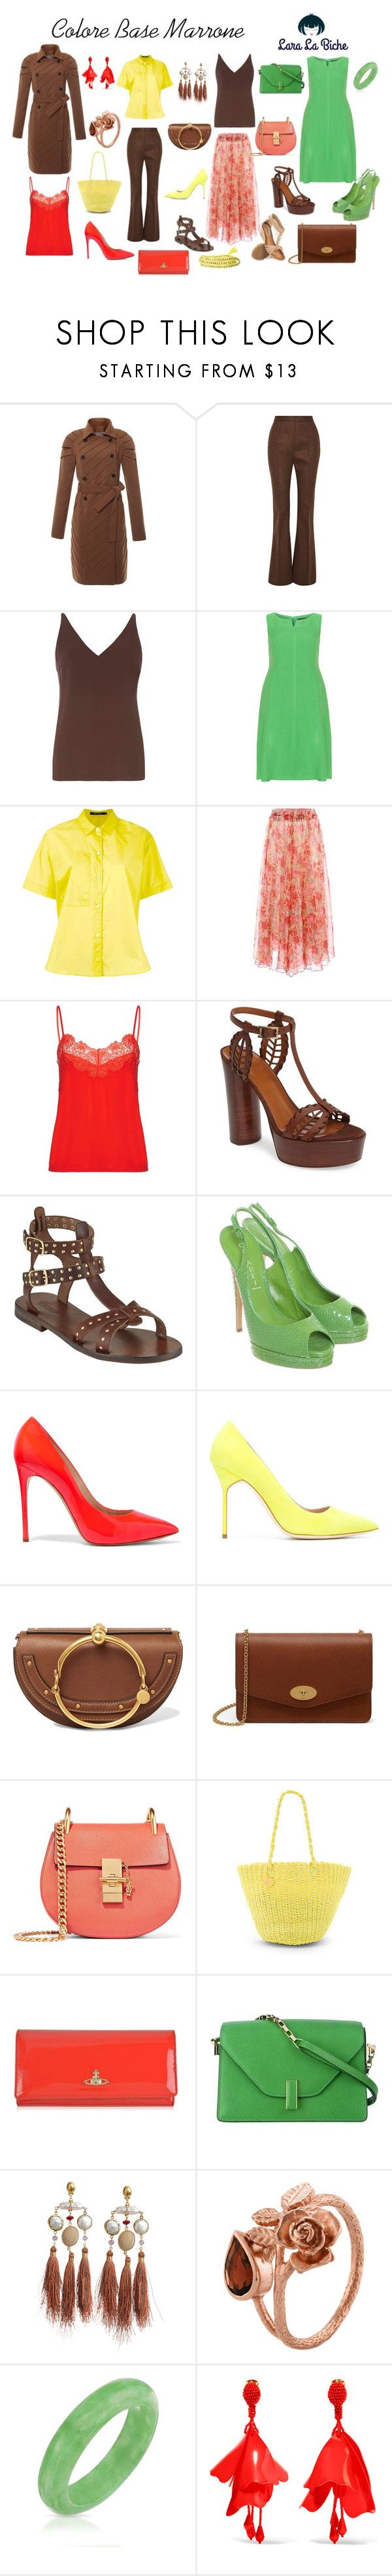 """""""colore base marrone"""" by laralabiche ❤ liked on Polyvore featuring Judy Wu, Marni, Dorothy Perkins, navabi, Sofie D'hoore, Ganni, Aquatalia by Marvin K., Somerset by Alice Temperley, Casadei and Manolo Blahnik"""